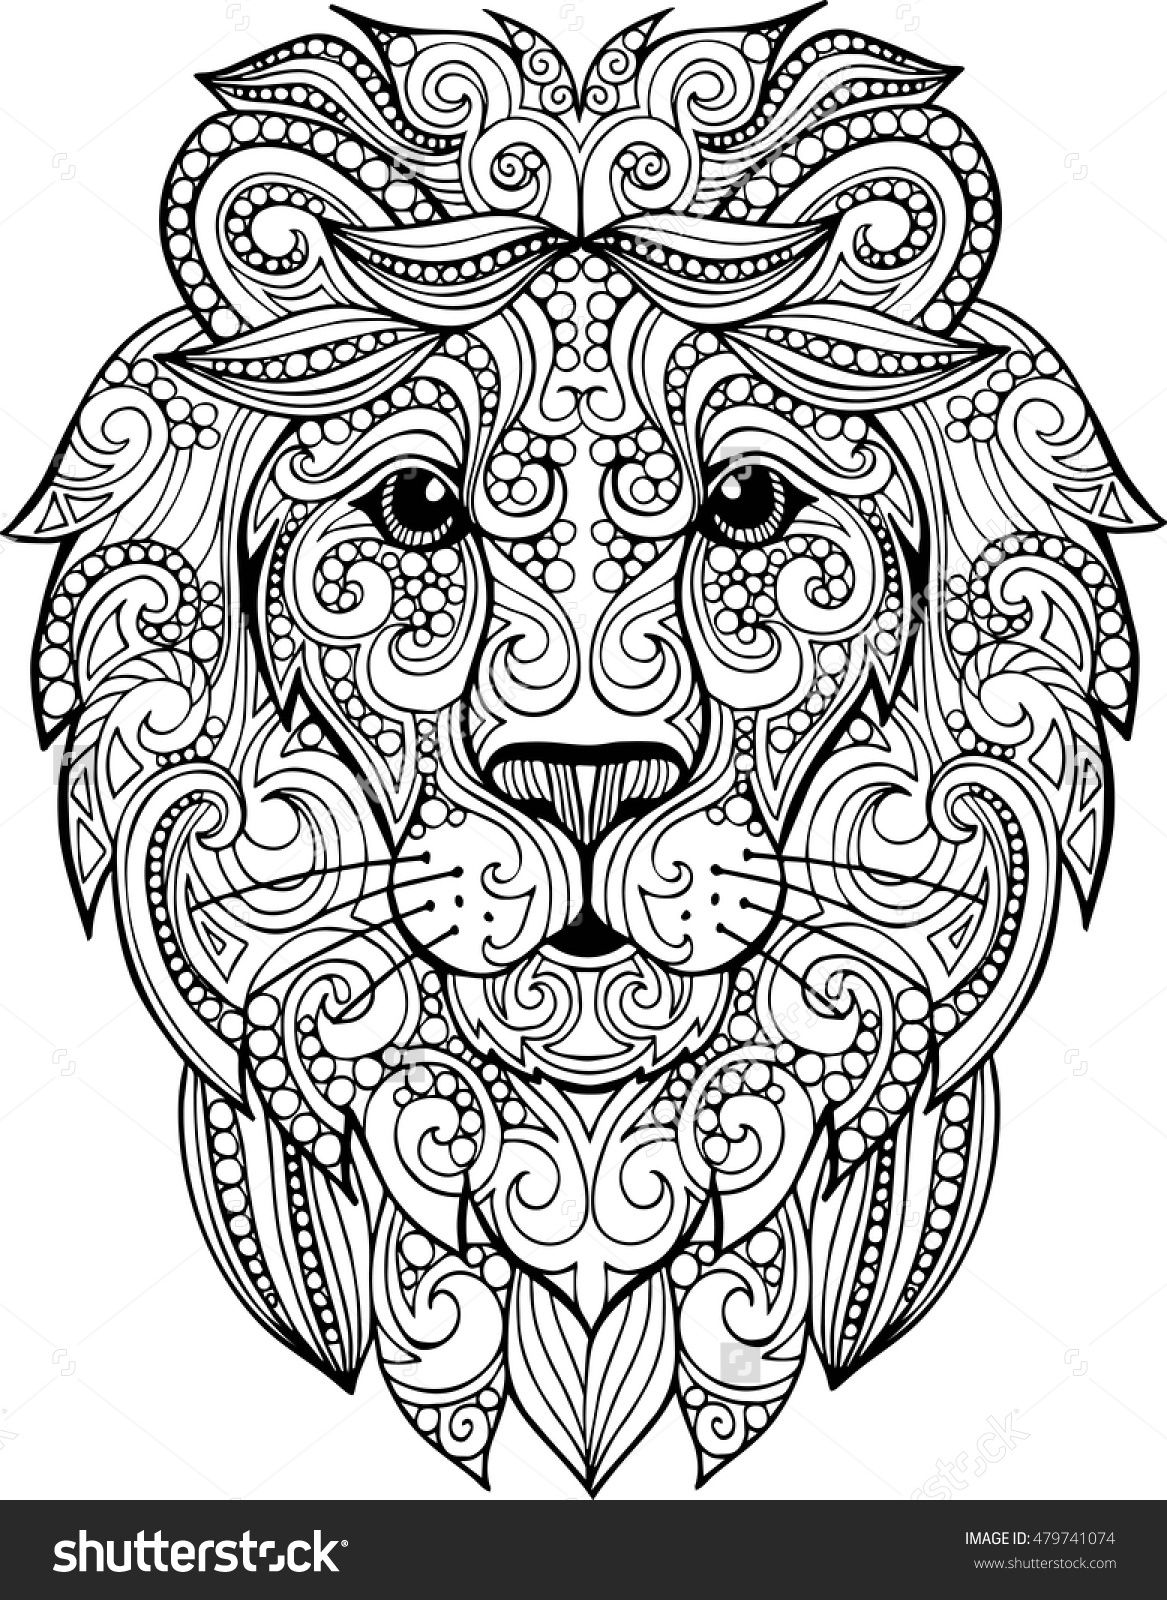 1167x1600 Hand Drawn Doodle Zentangle Lion Illustration Decorative Ornate